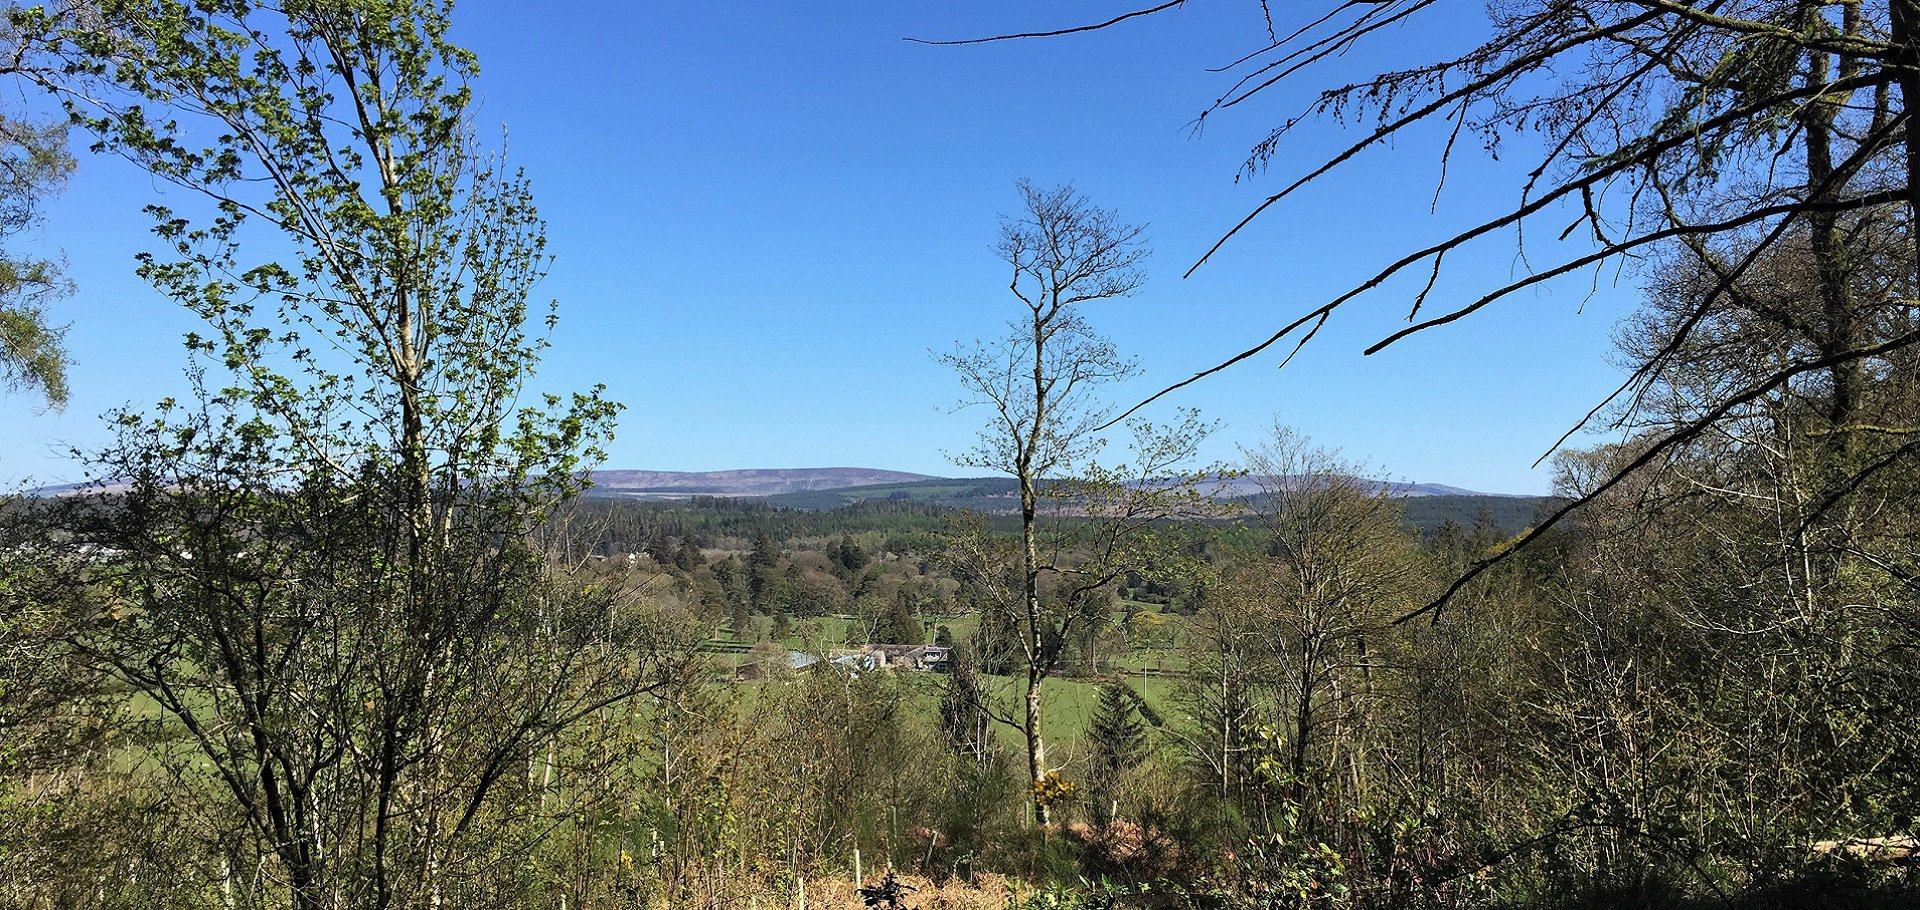 View over Dalbeattie woods from Kirkennan woods